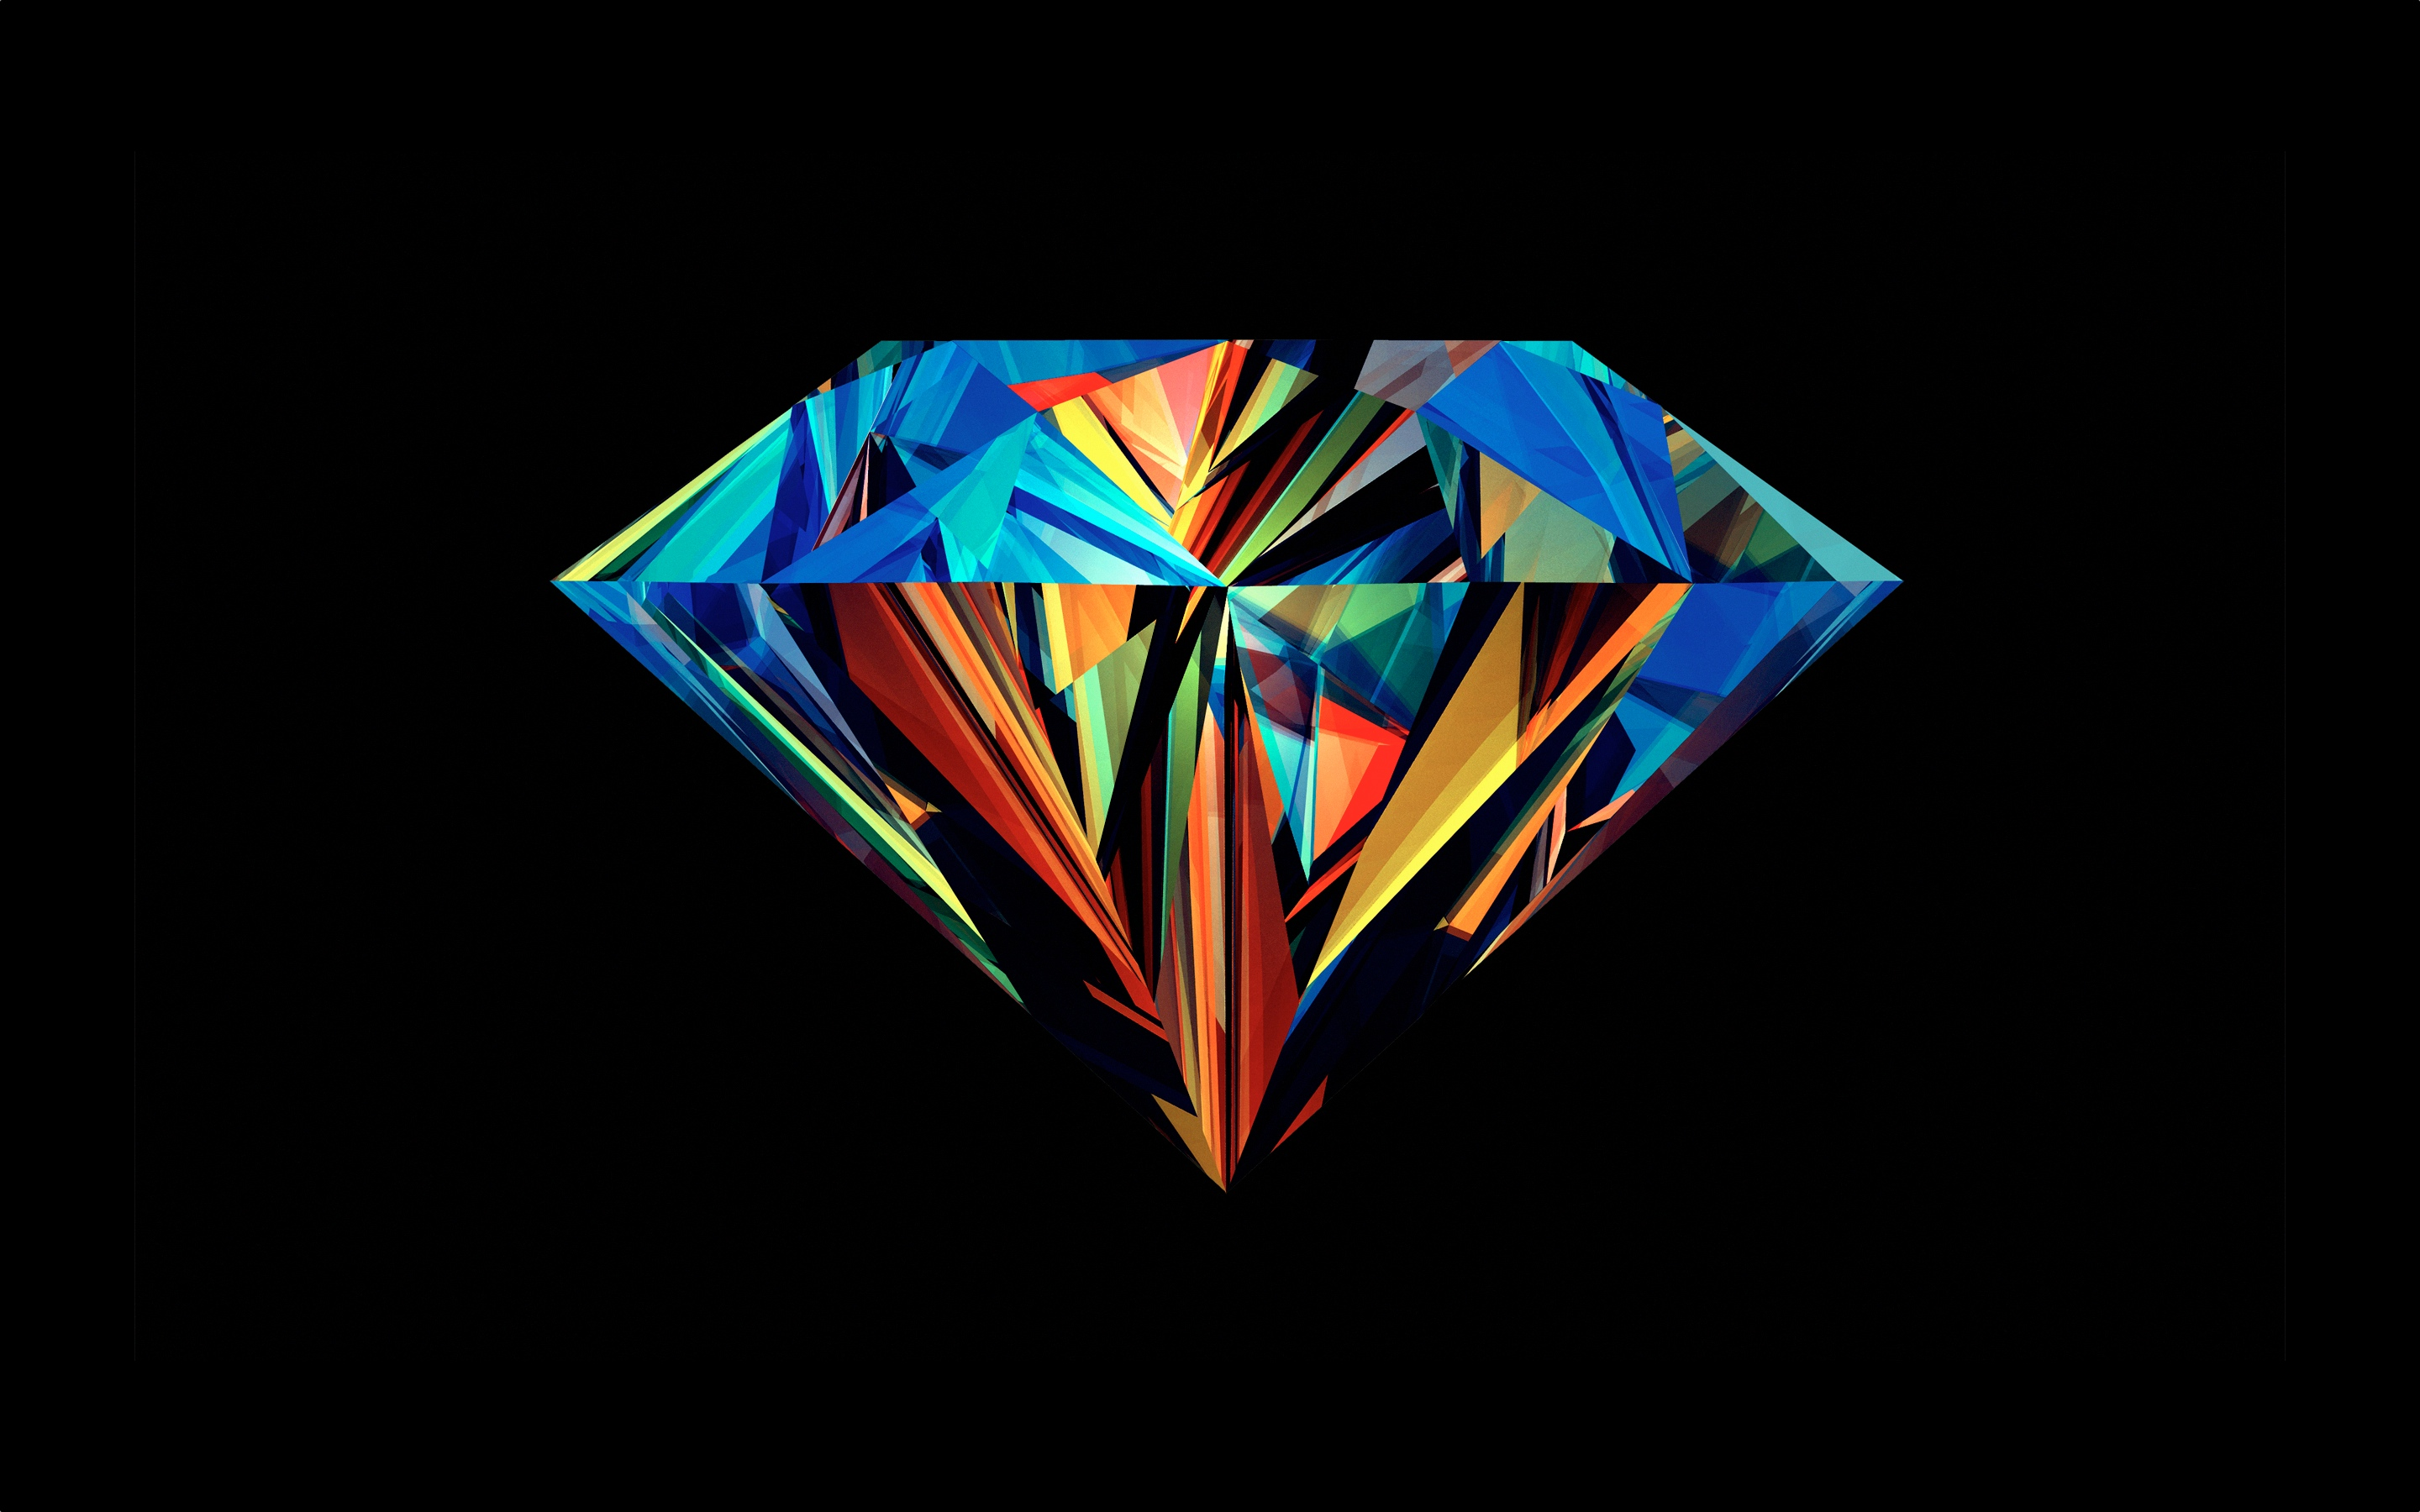 Wallpaper Diamond